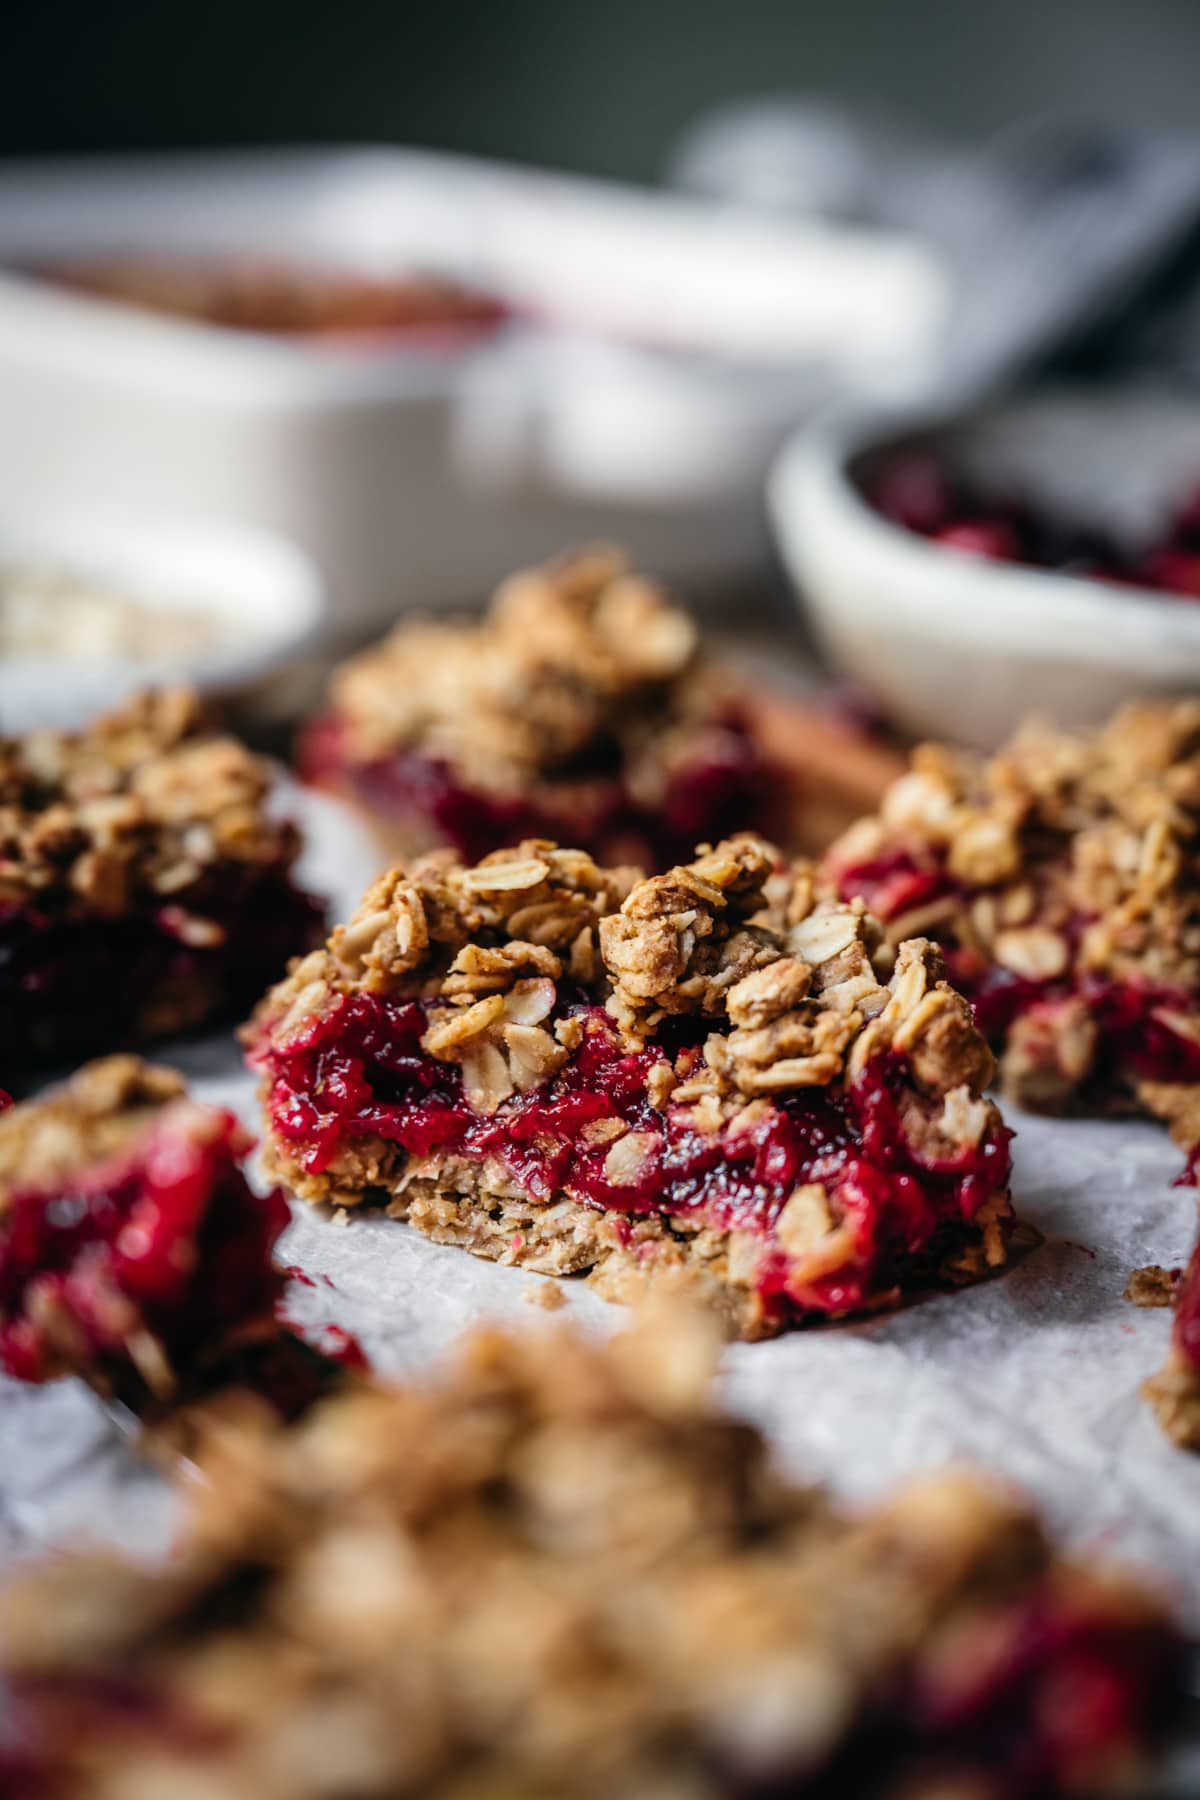 side view of vegan cranberry crumb bar cut in half with oat streusel topping.